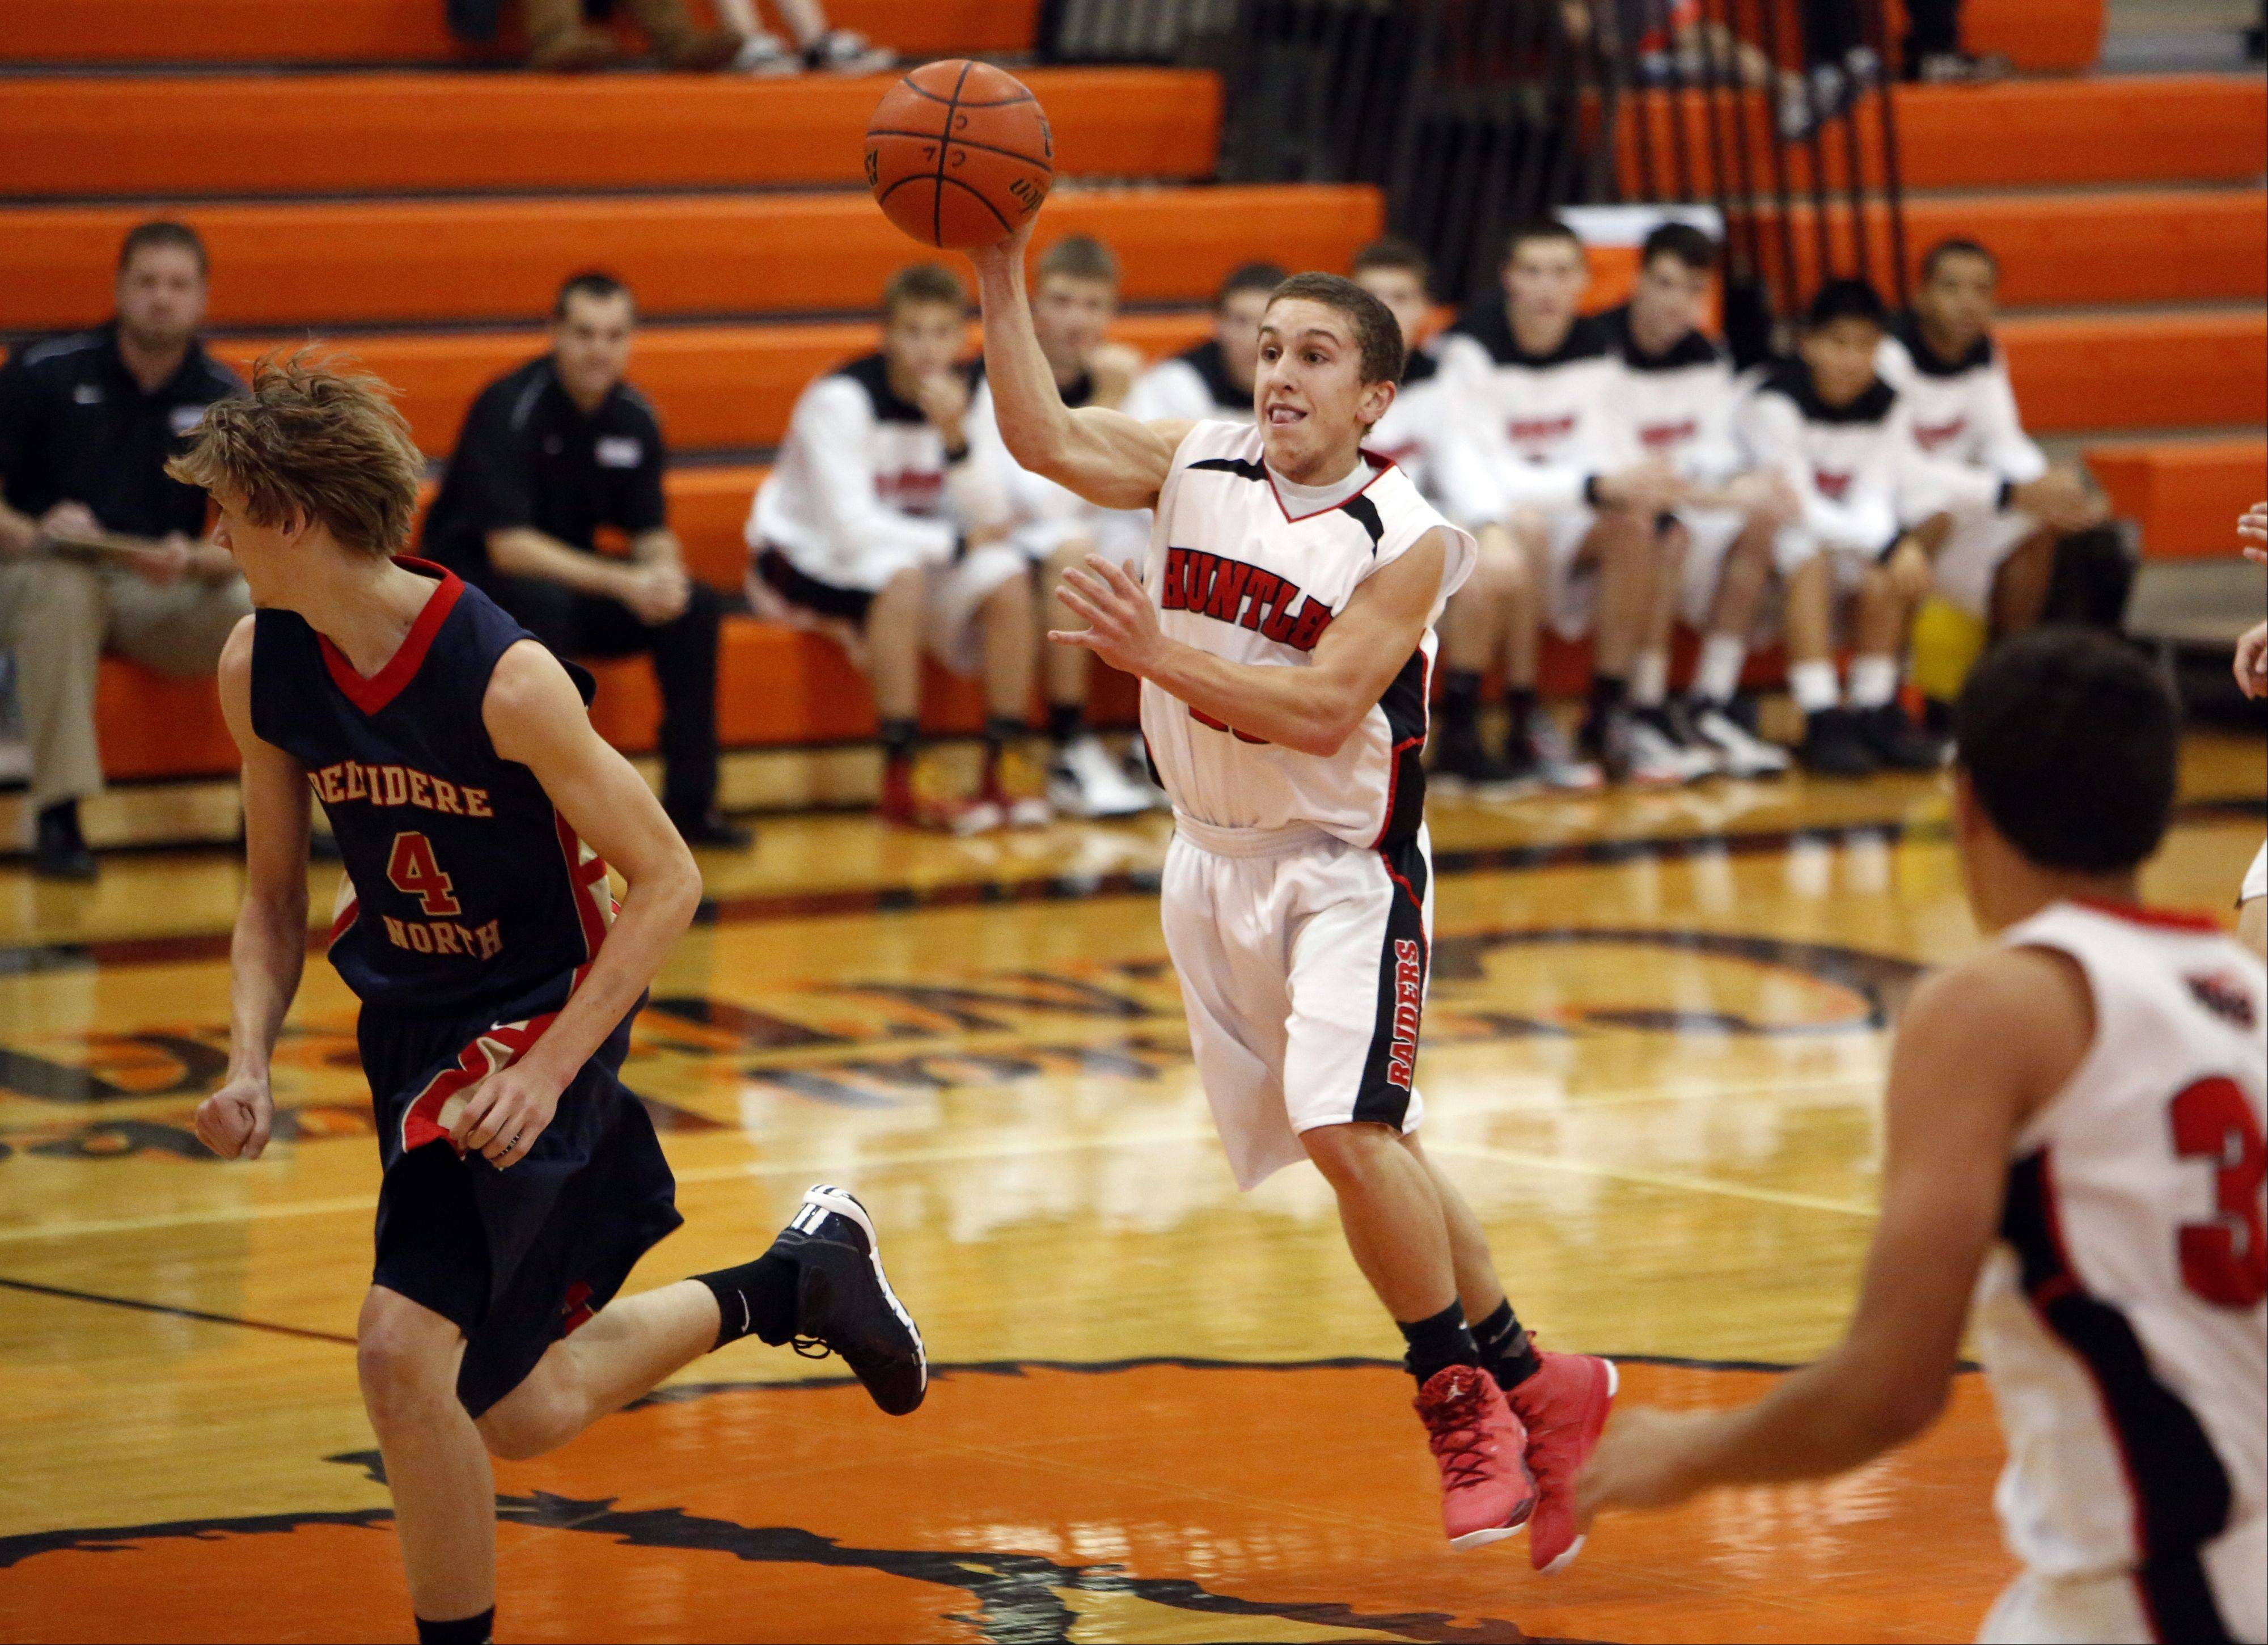 Huntley's Kyle Slonka (23) looks for an open teammate during the Crystal Lake Central High School Coaches vs. Cancer Thanksgiving Tourney Saturday in Crystal Lake.